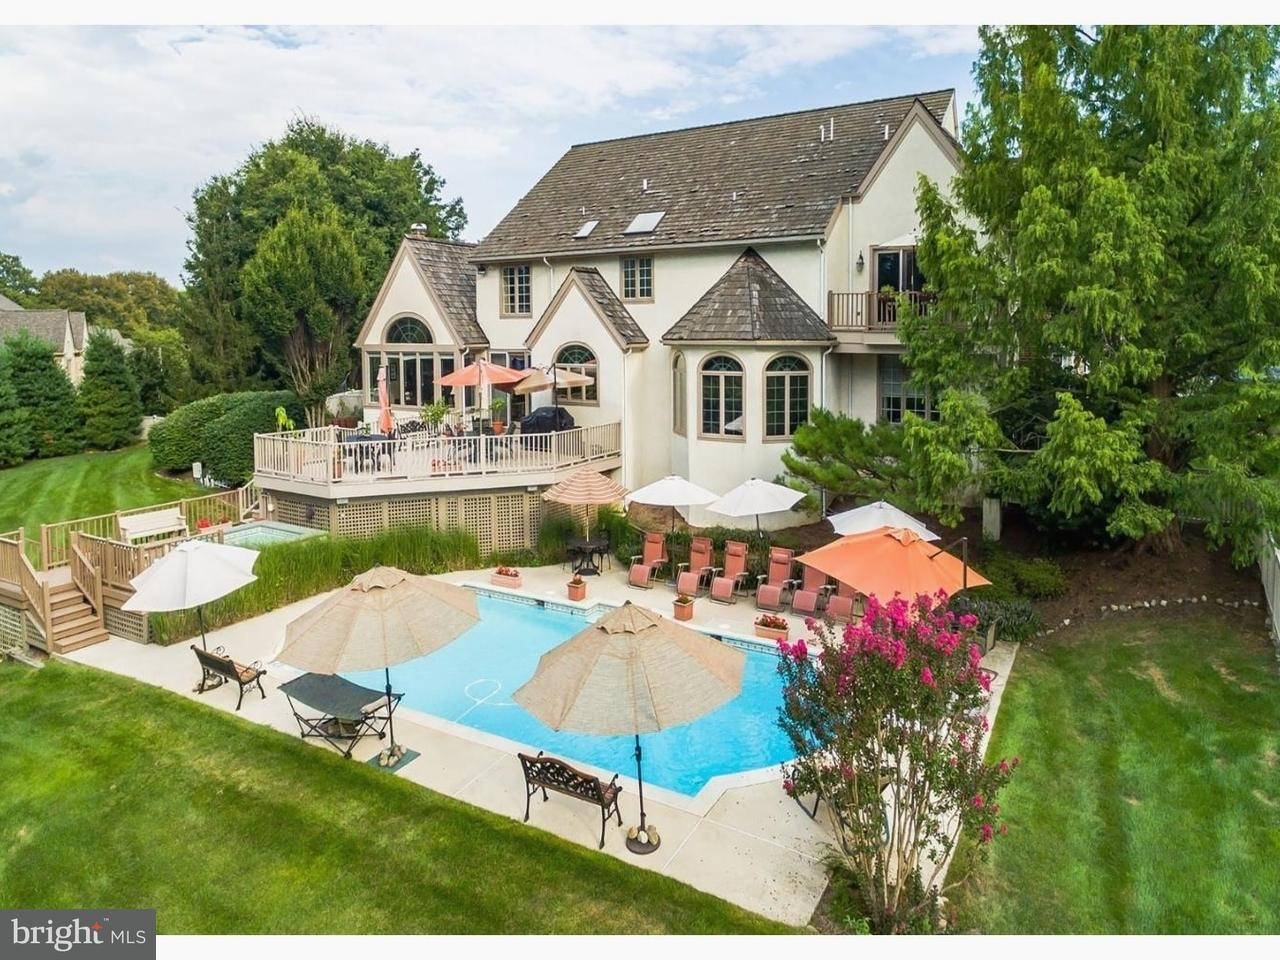 Single Family Home for Sale at 1091 MAPLE HILL Lane Malvern, Pennsylvania 19355 United States